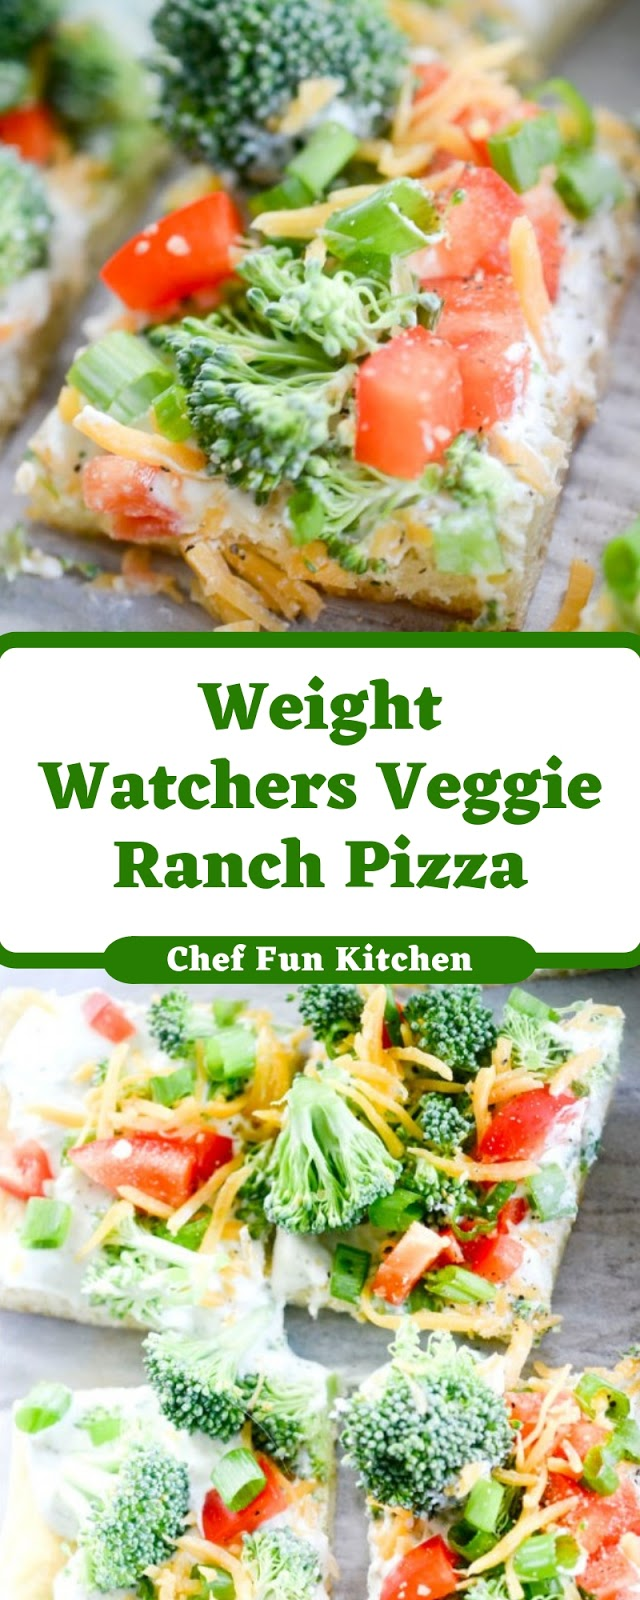 Weight Watchers Veggie Ranch Pizza